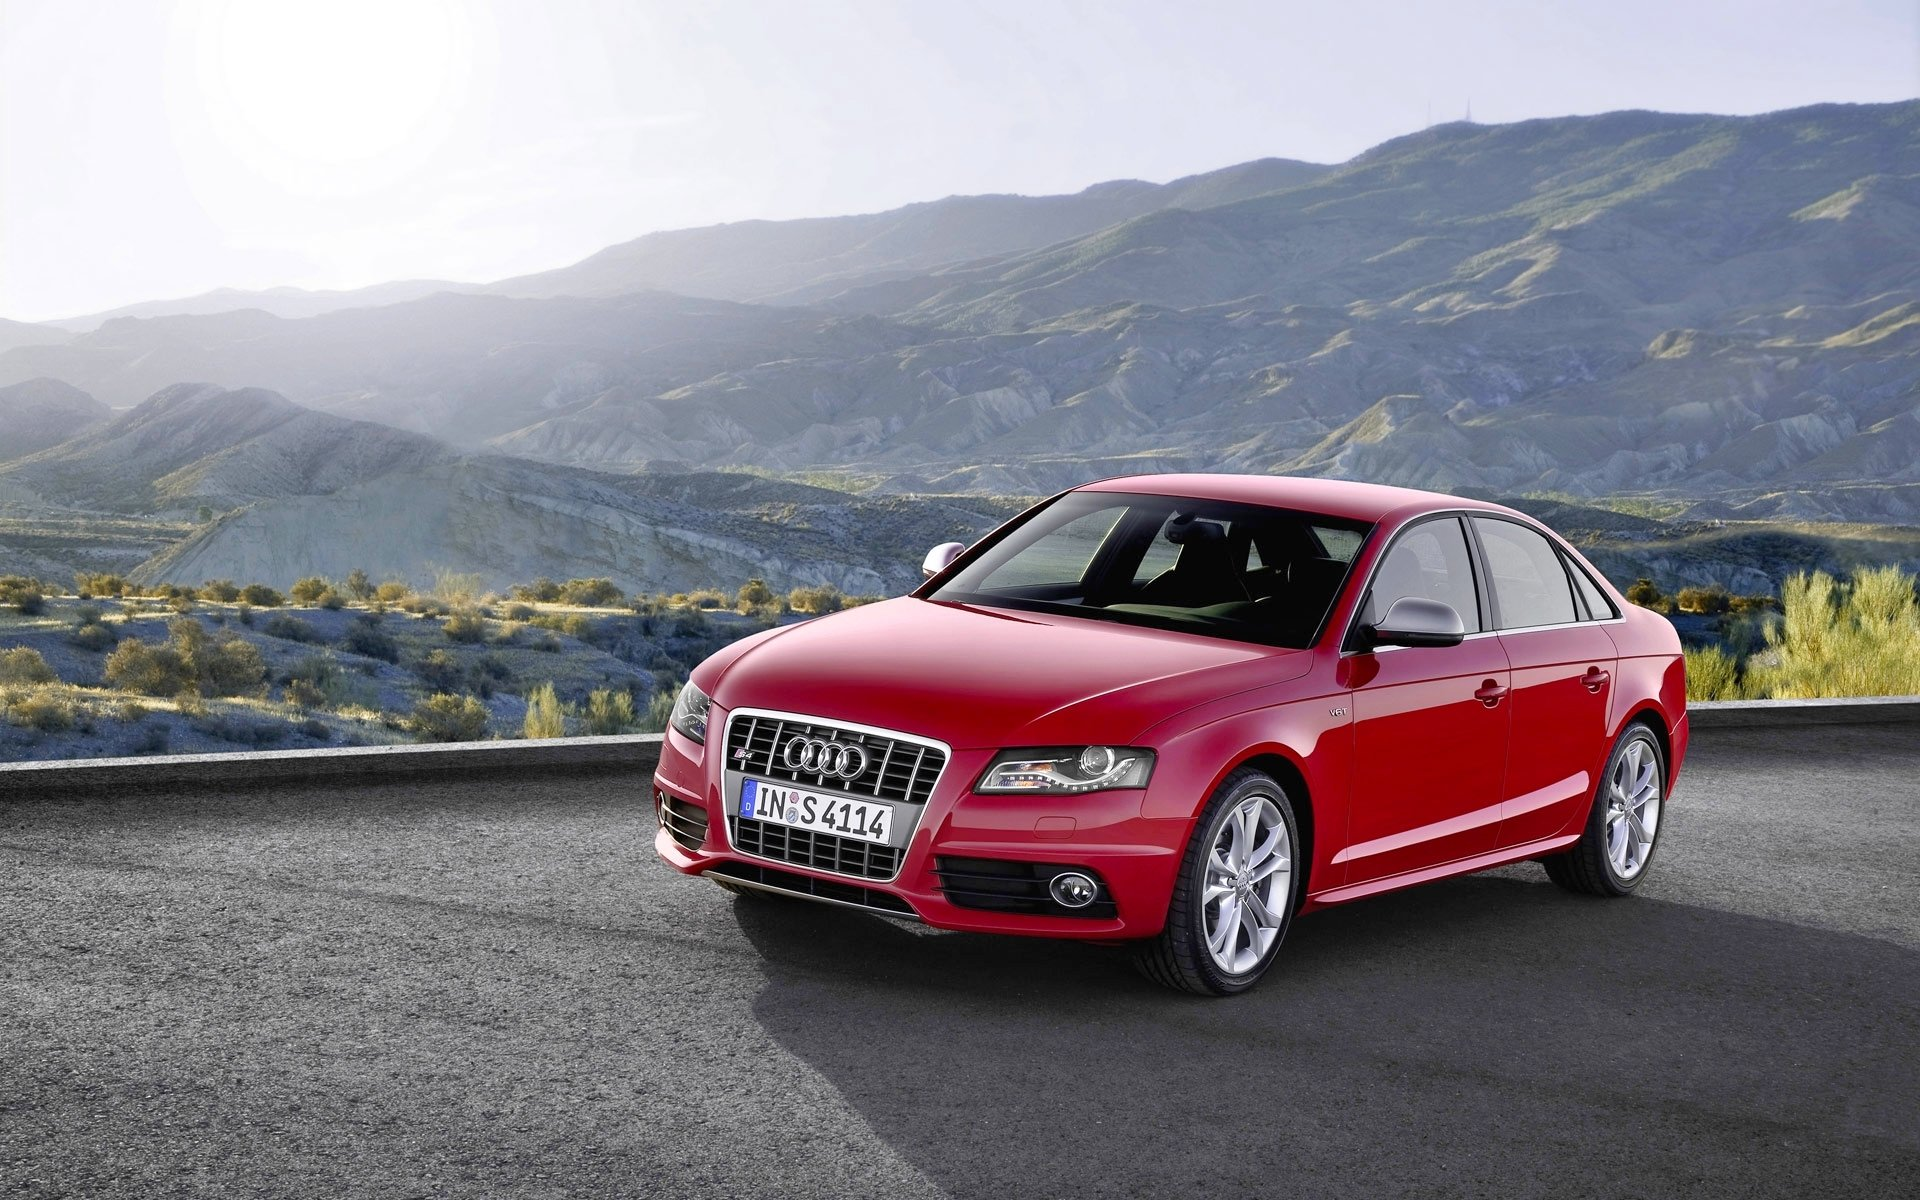 Best Audi S4 wallpaper ID:379901 for High Resolution hd 1920x1200 computer